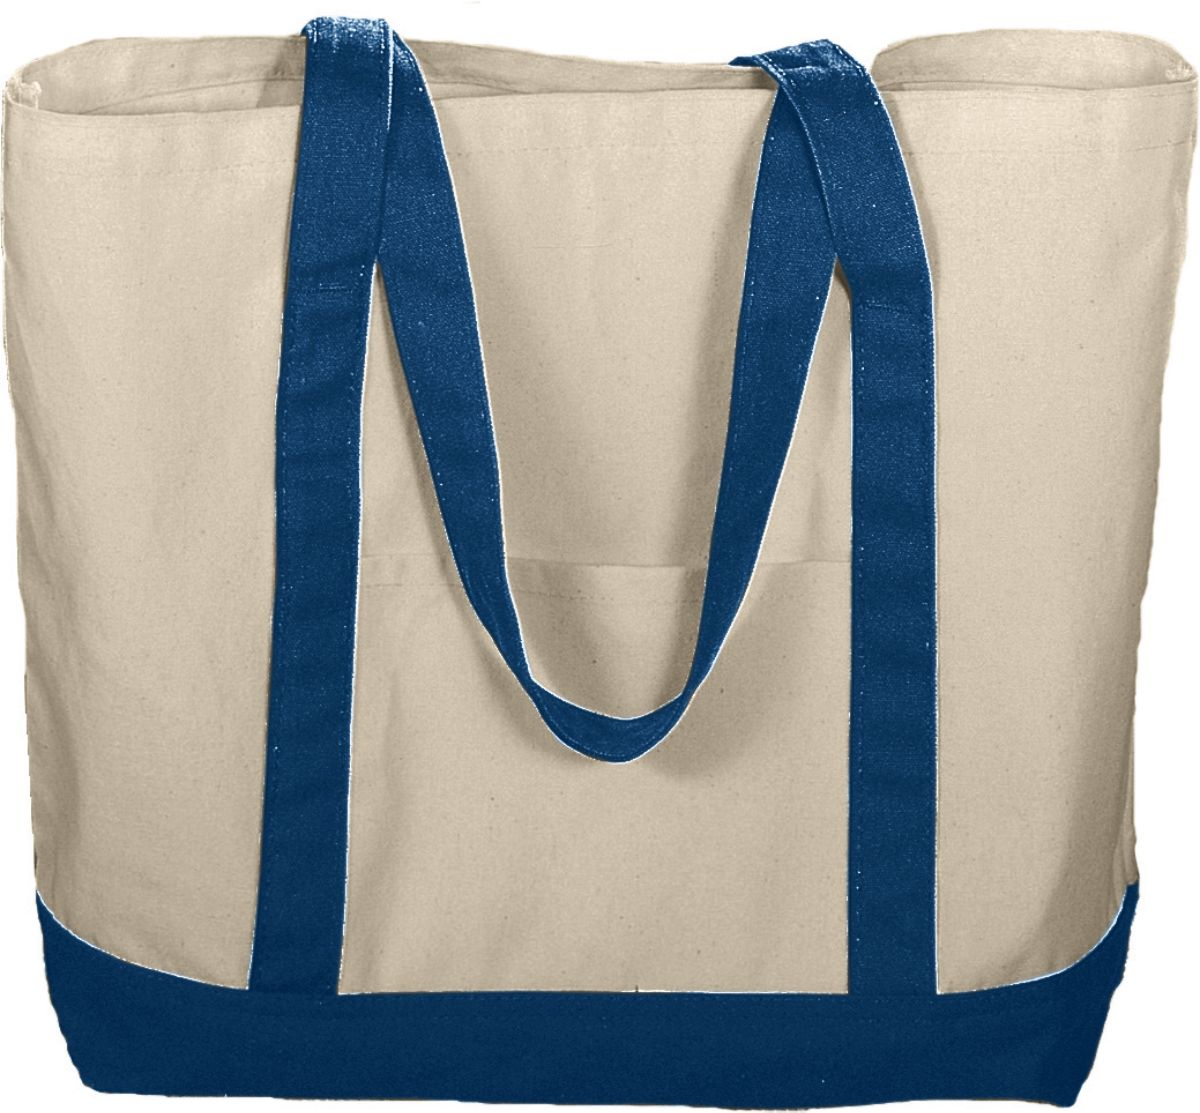 625 Boater Tote NATURAL/NAVY OS